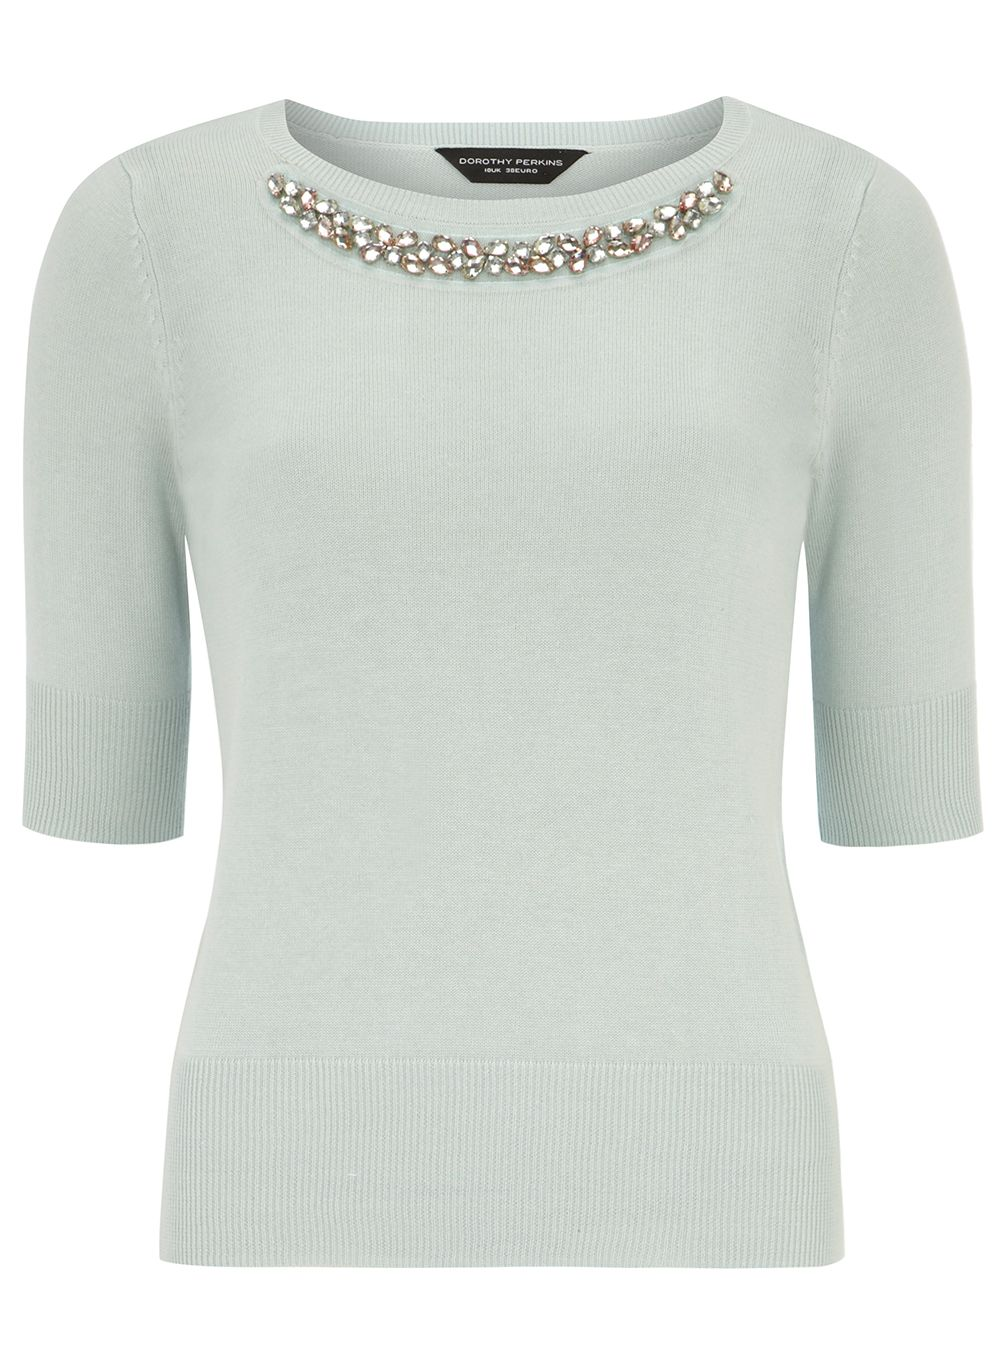 Embellished Half Sleeve Jumper